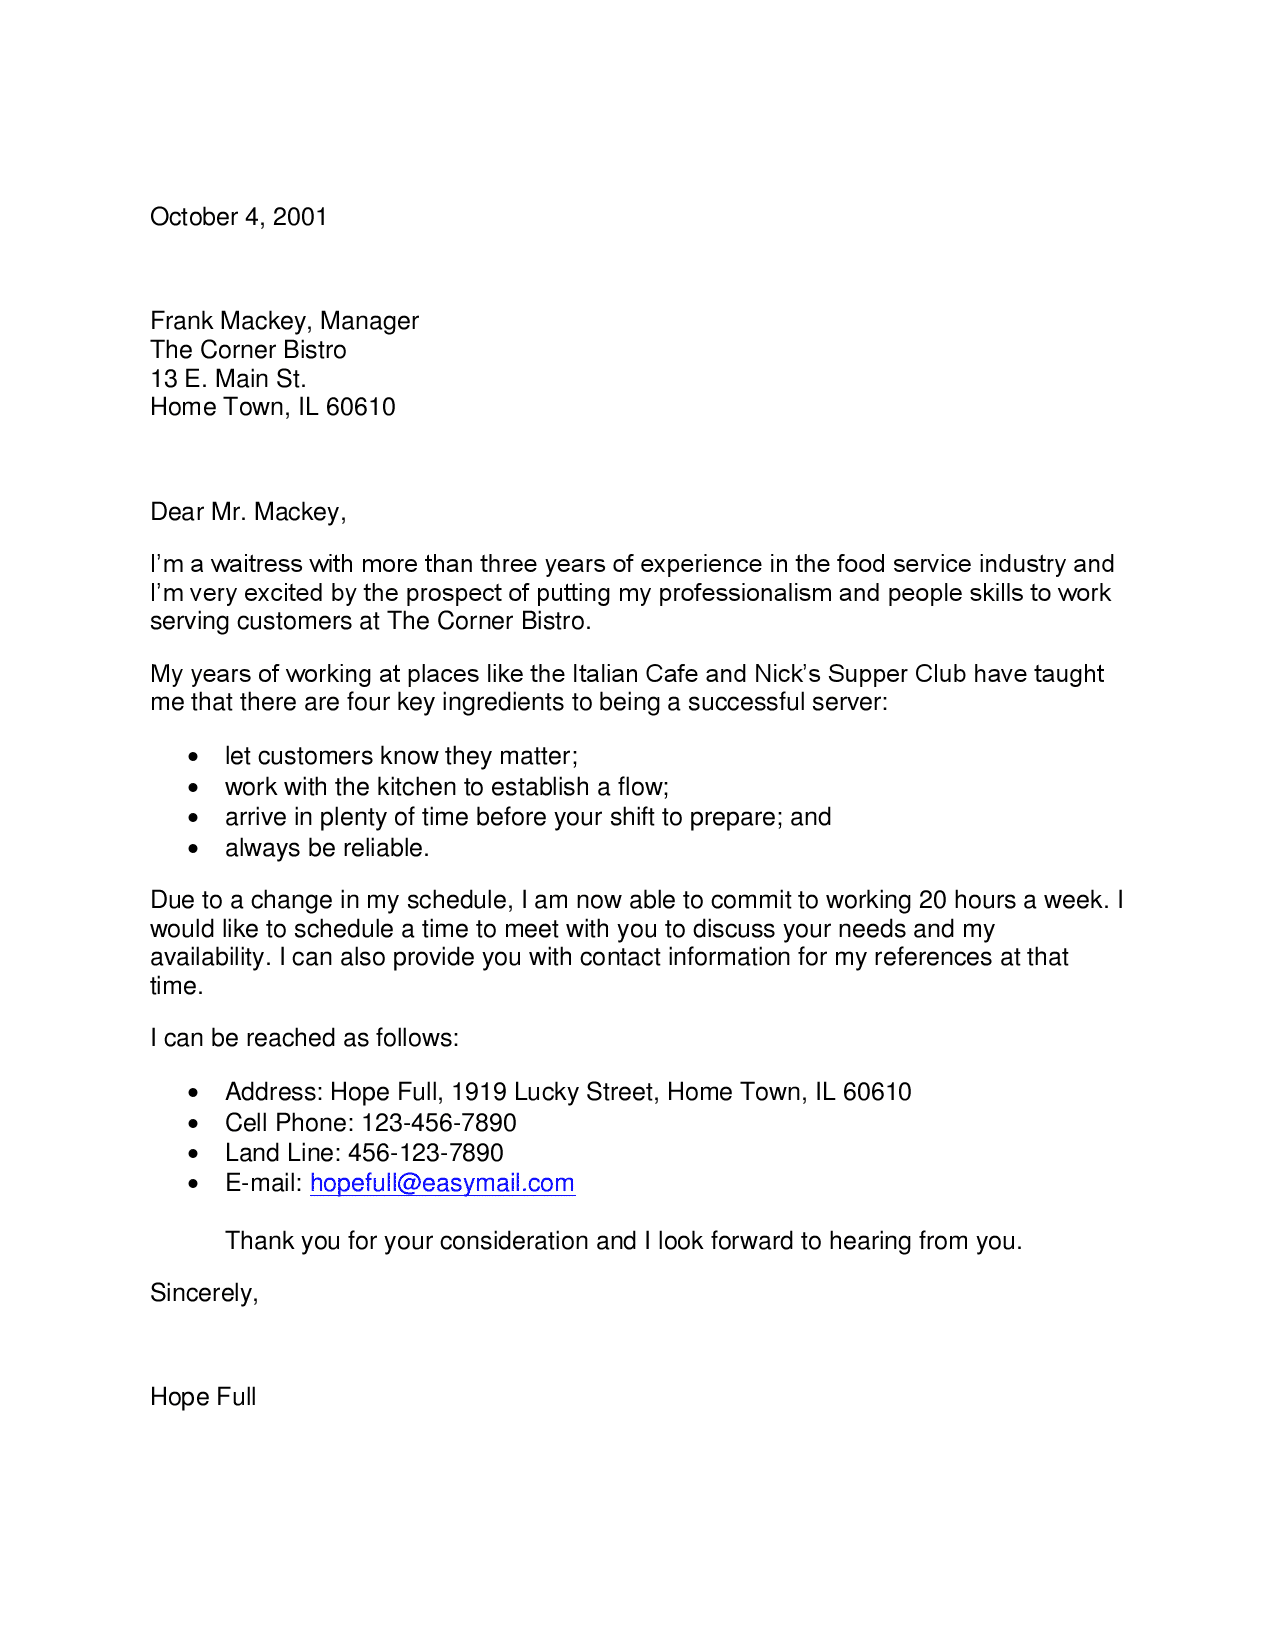 cover letter for assistant housekeeper waitress cover letter 27545 - Sample Housekeeper Cover Letter